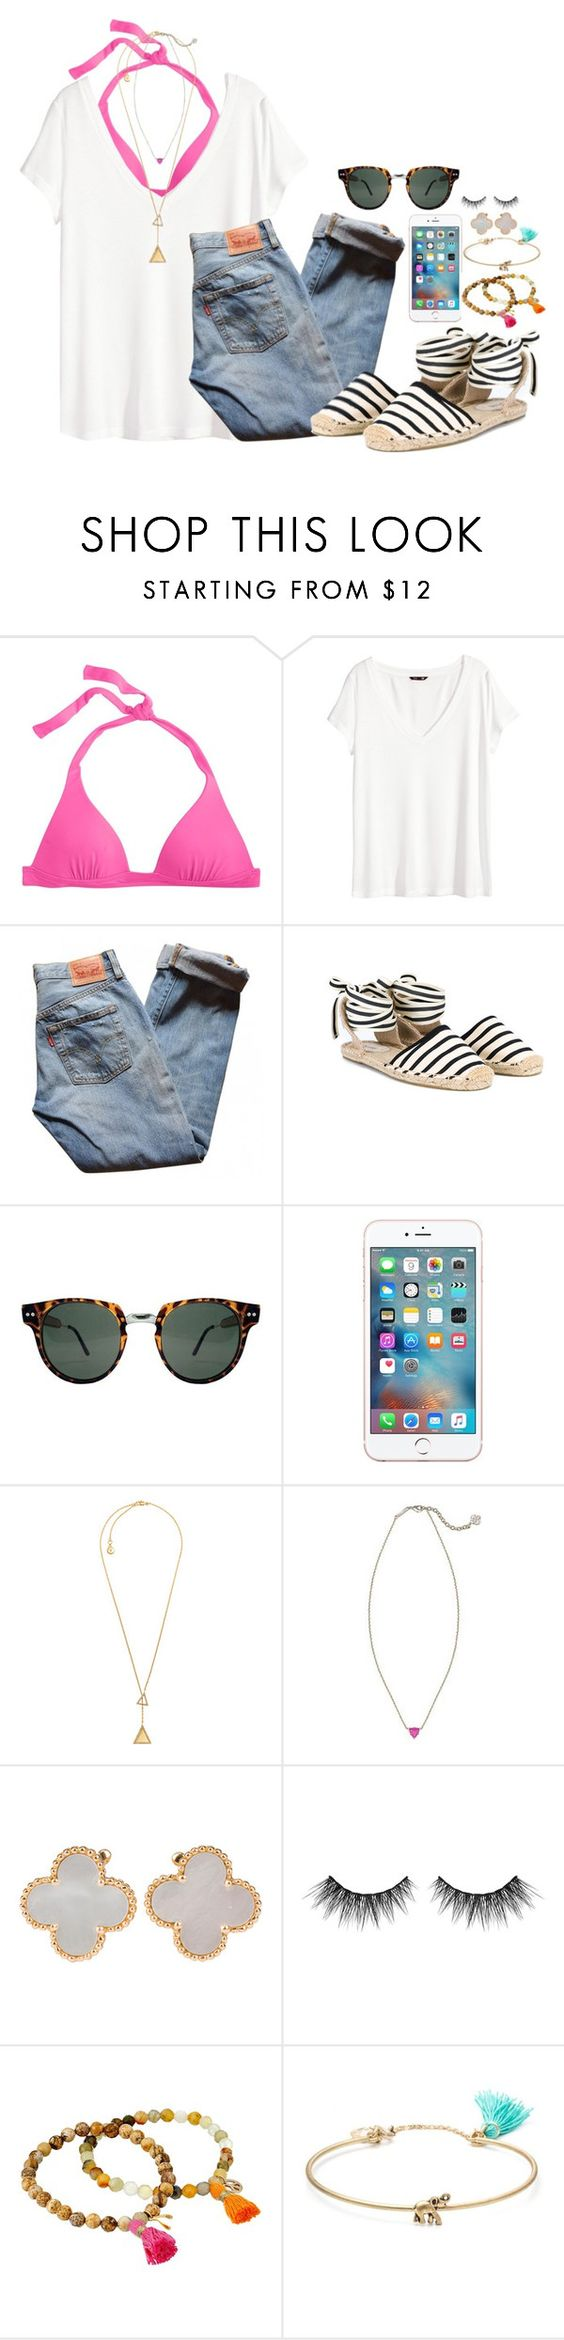 """""""headed to cheer"""" by molliekatemcc ❤ liked on Polyvore featuring J.Crew, H&M, Levi's, Soludos, Michael Kors, Kendra Scott, Van Cleef & Arpels, Dee Berkley and Lonna & Lilly"""